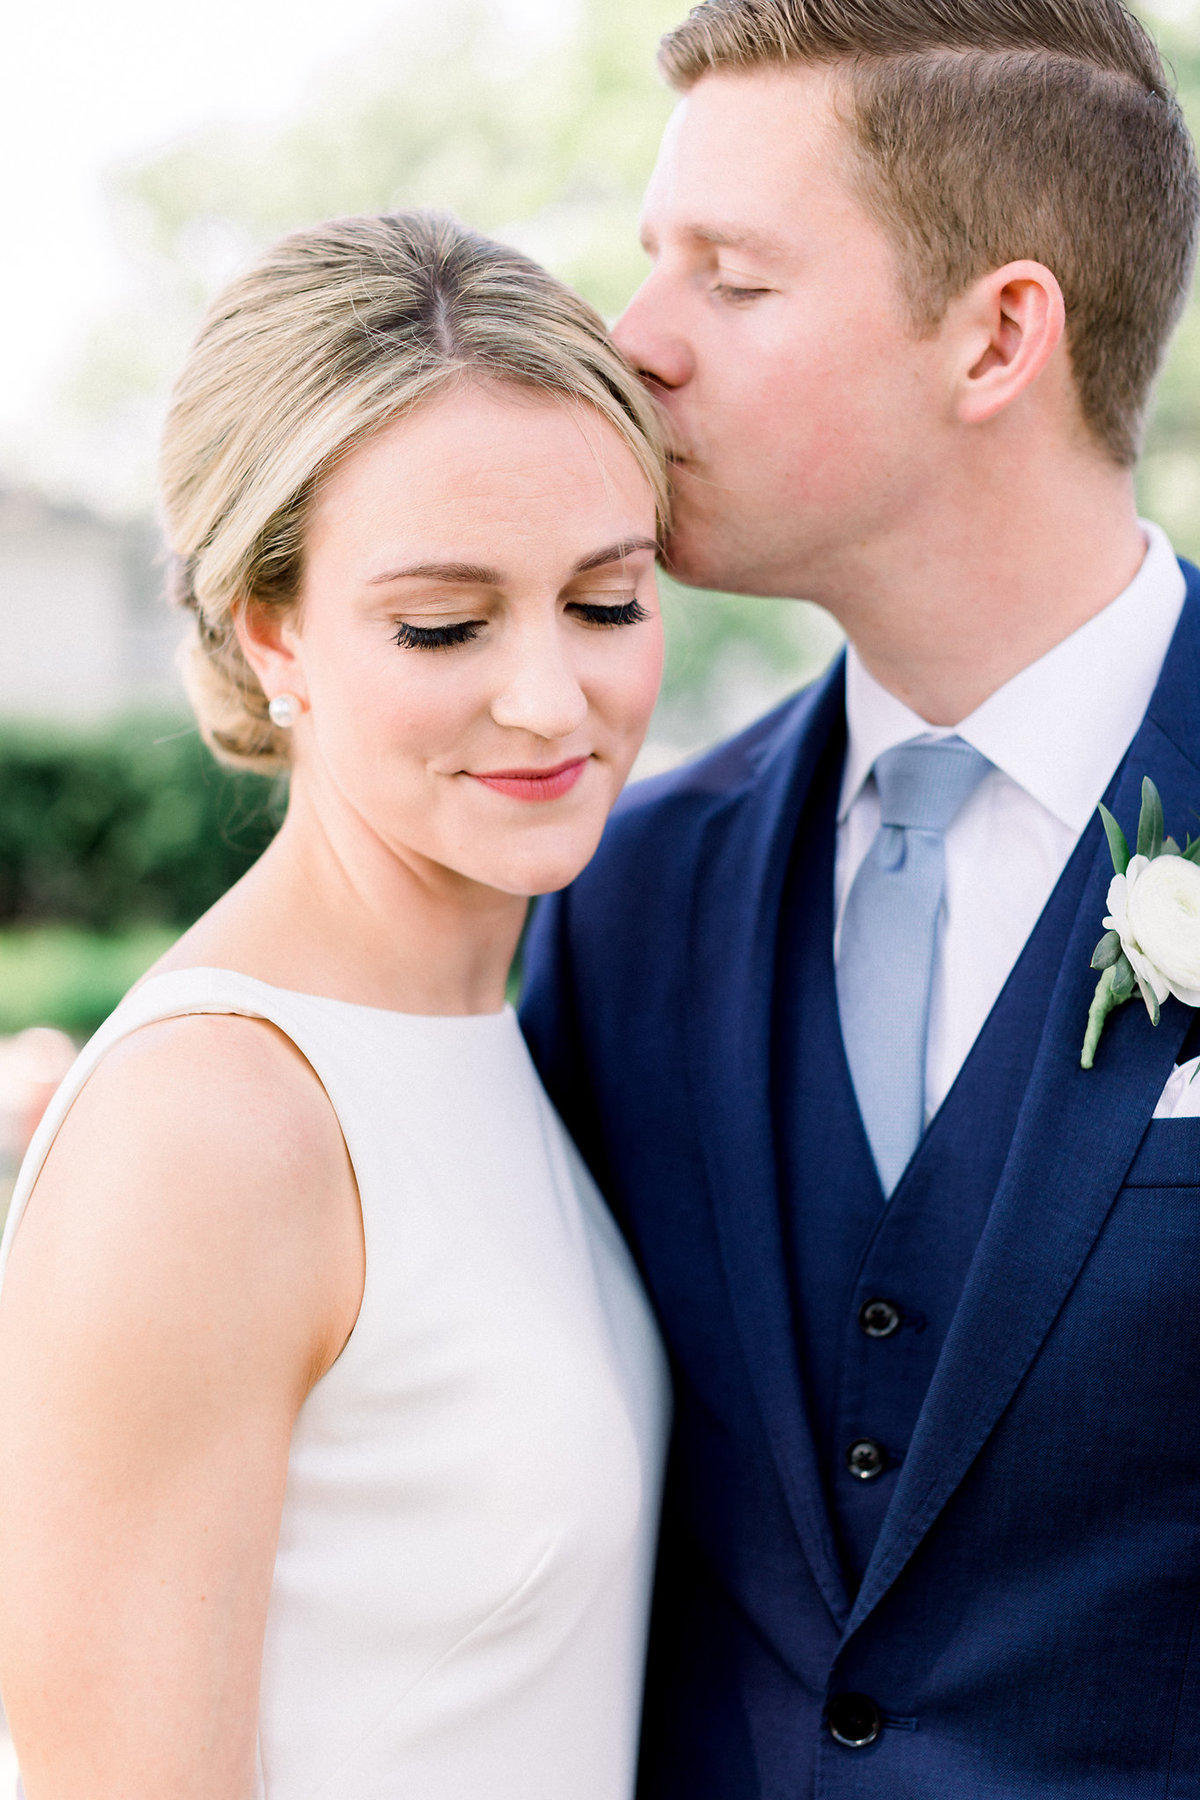 TiffaneyChildsPhotography-ChicagoWeddingPhotographer-Micheala+Tommy-ChicagoBotanicGardenWedding-BridalPortraits-14